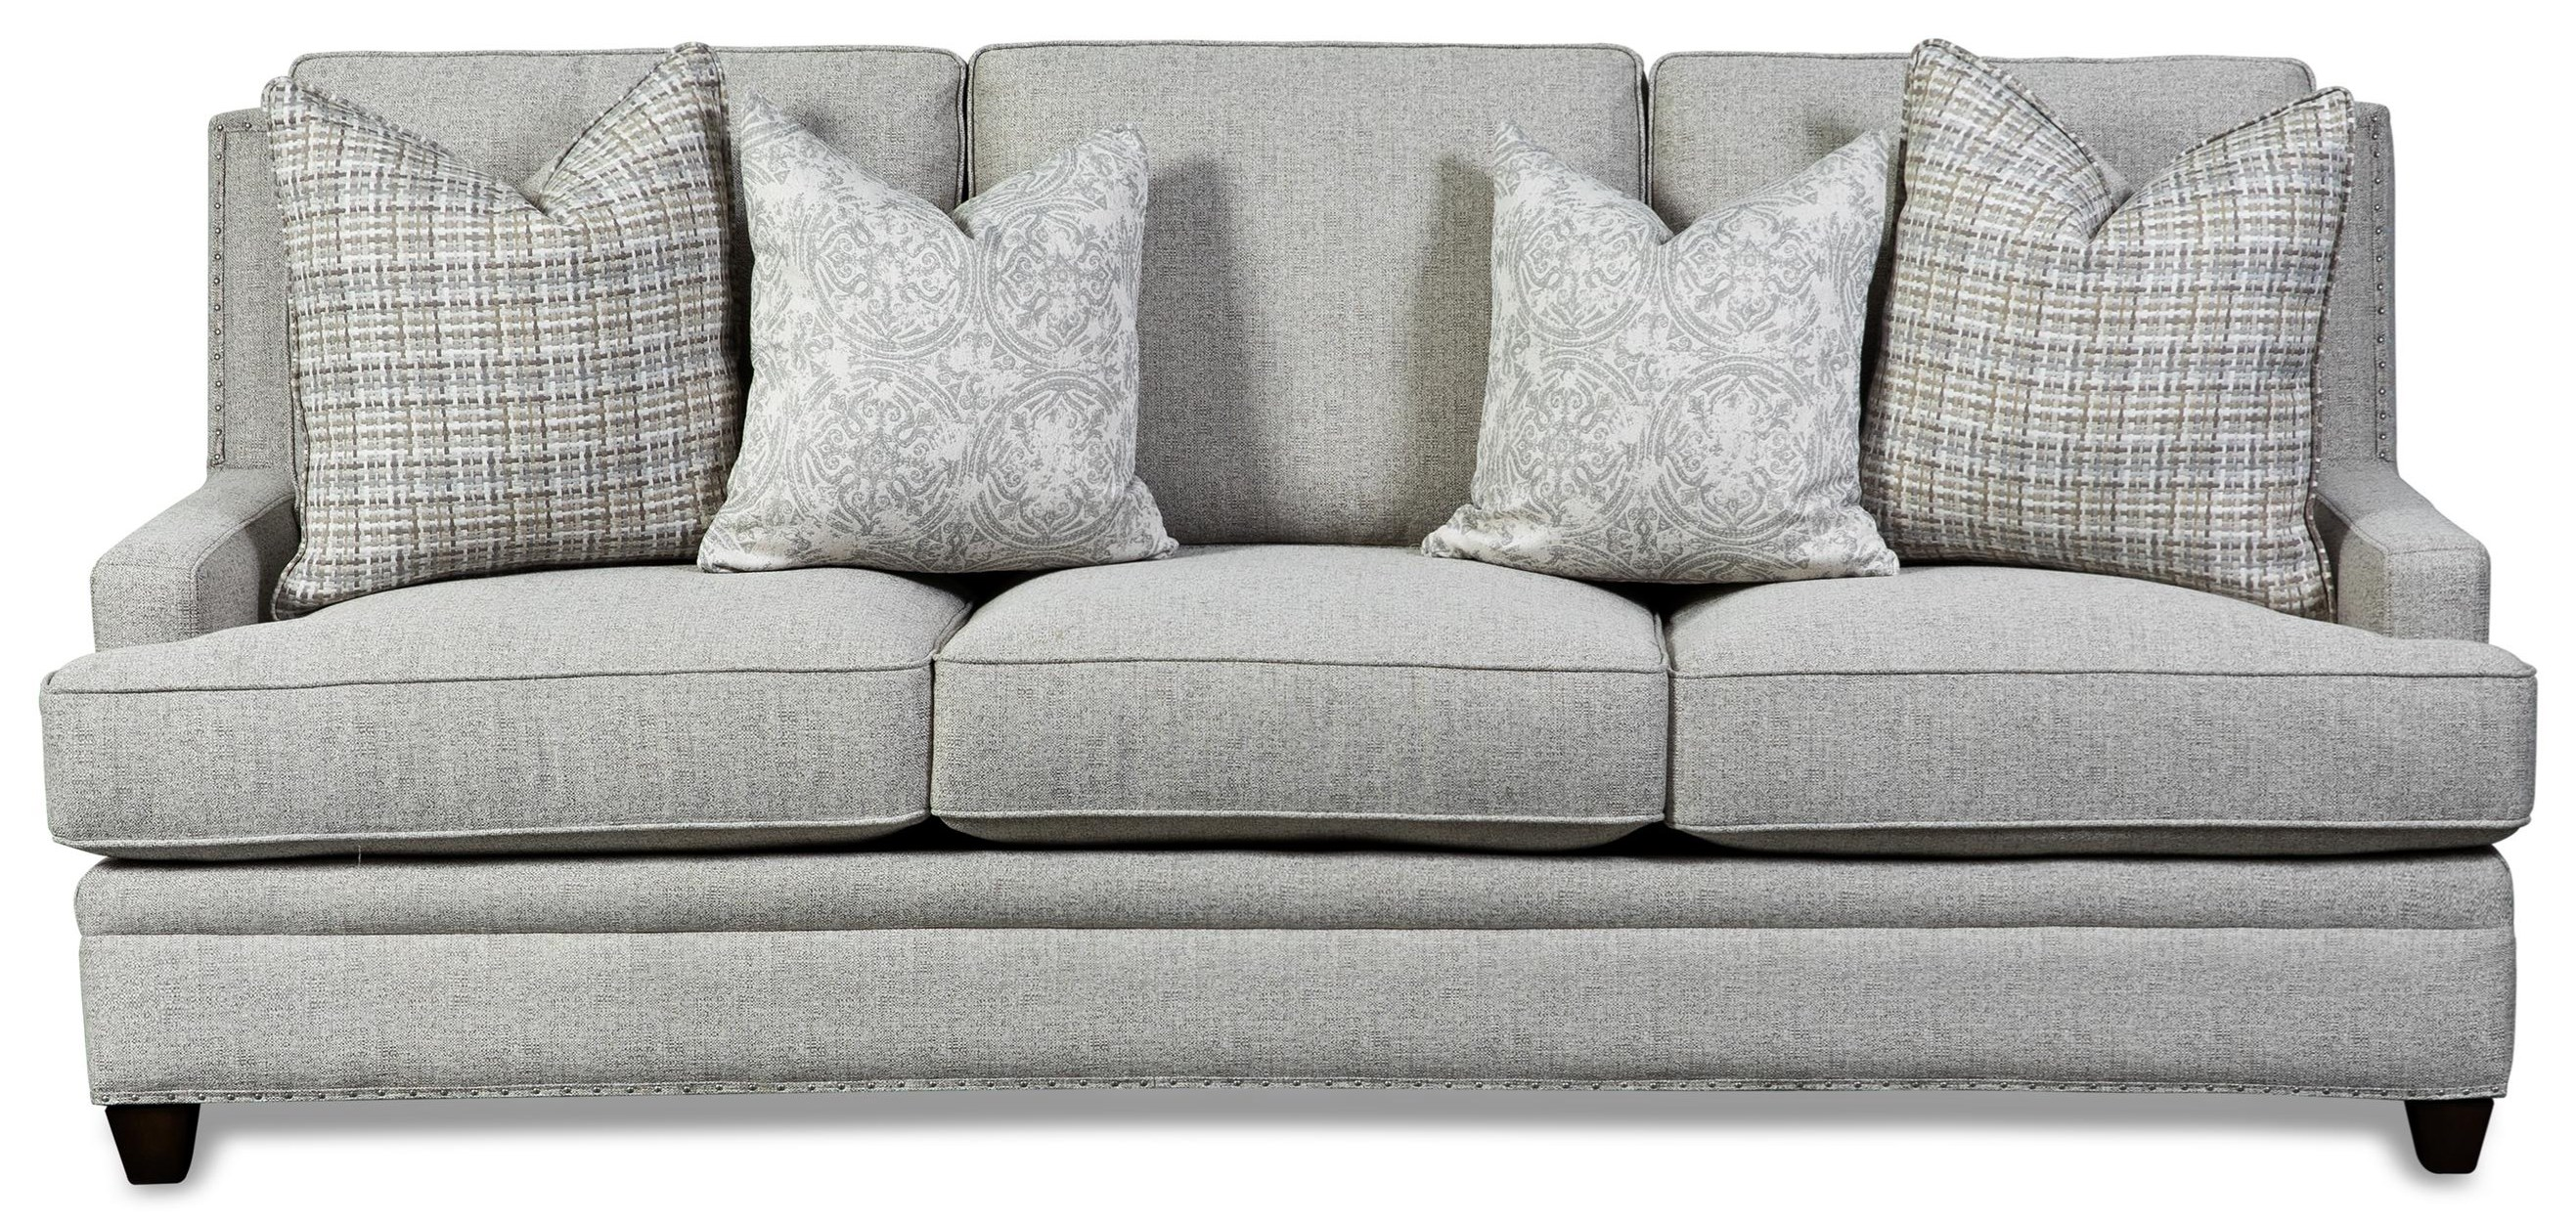 Beaumont Beaumont Sofa by Aria Designs at Morris Home